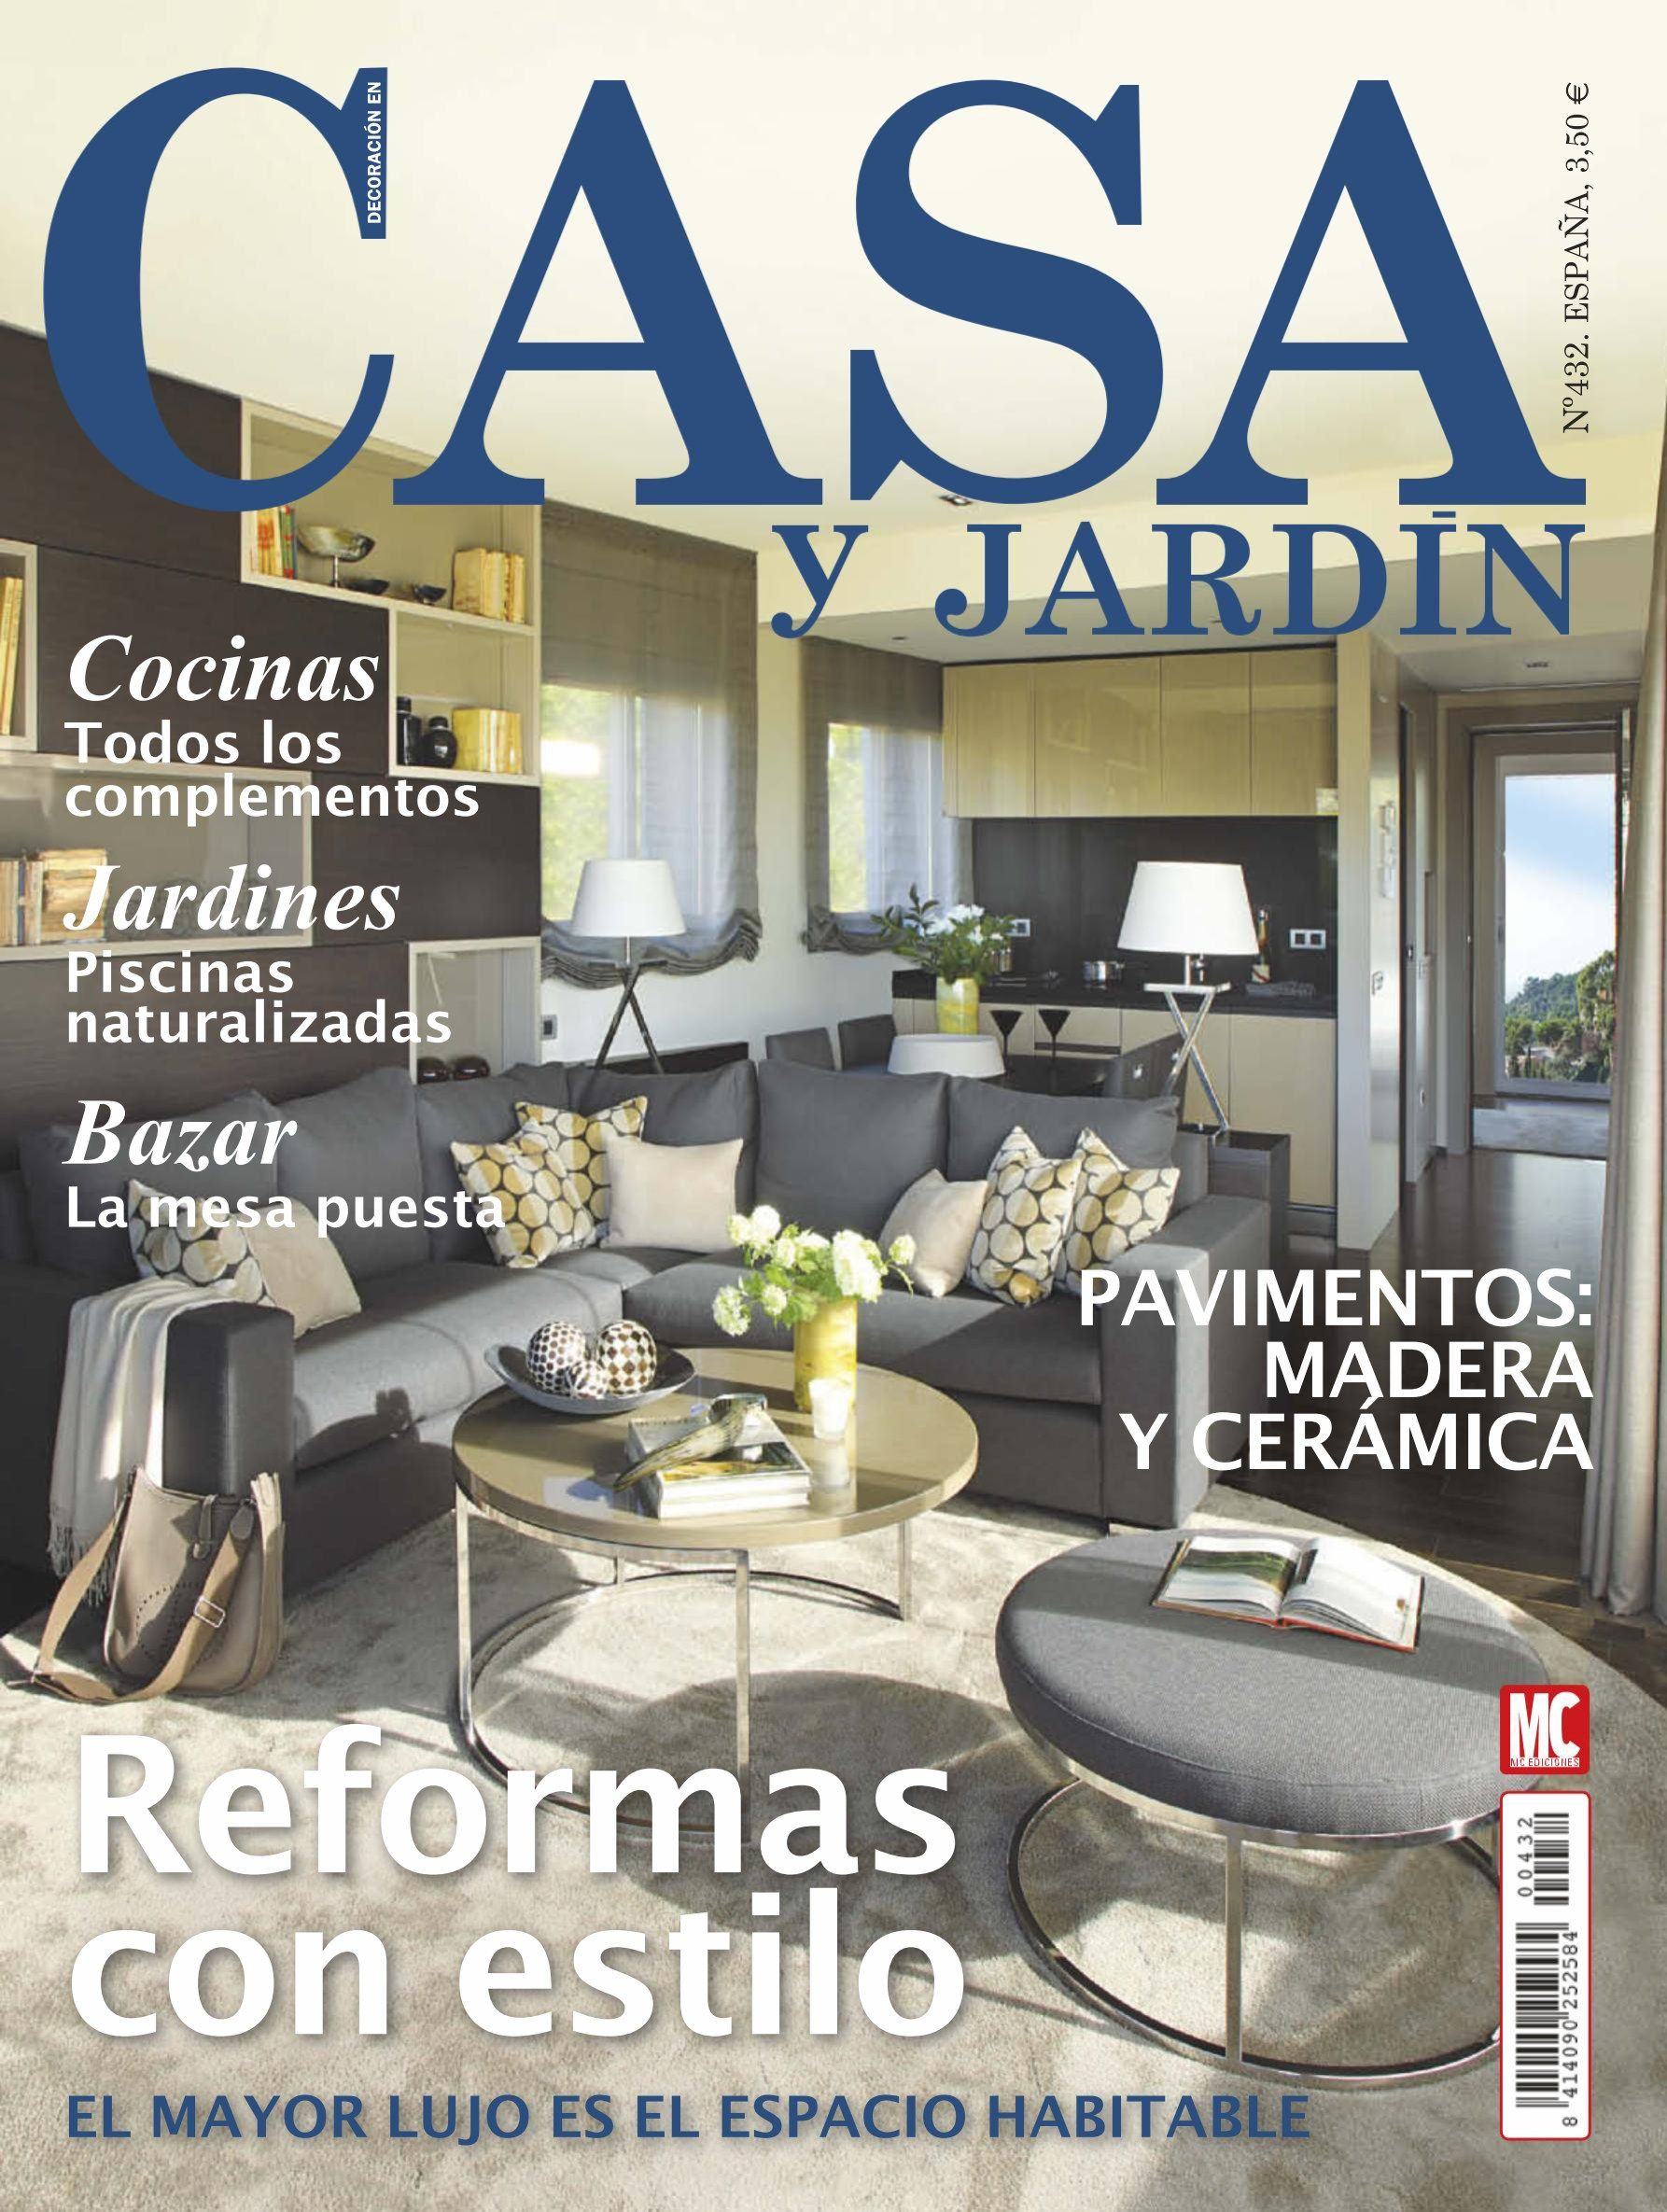 Casa Y Jardin Revista Decoracion Revista Decoracion Hogar